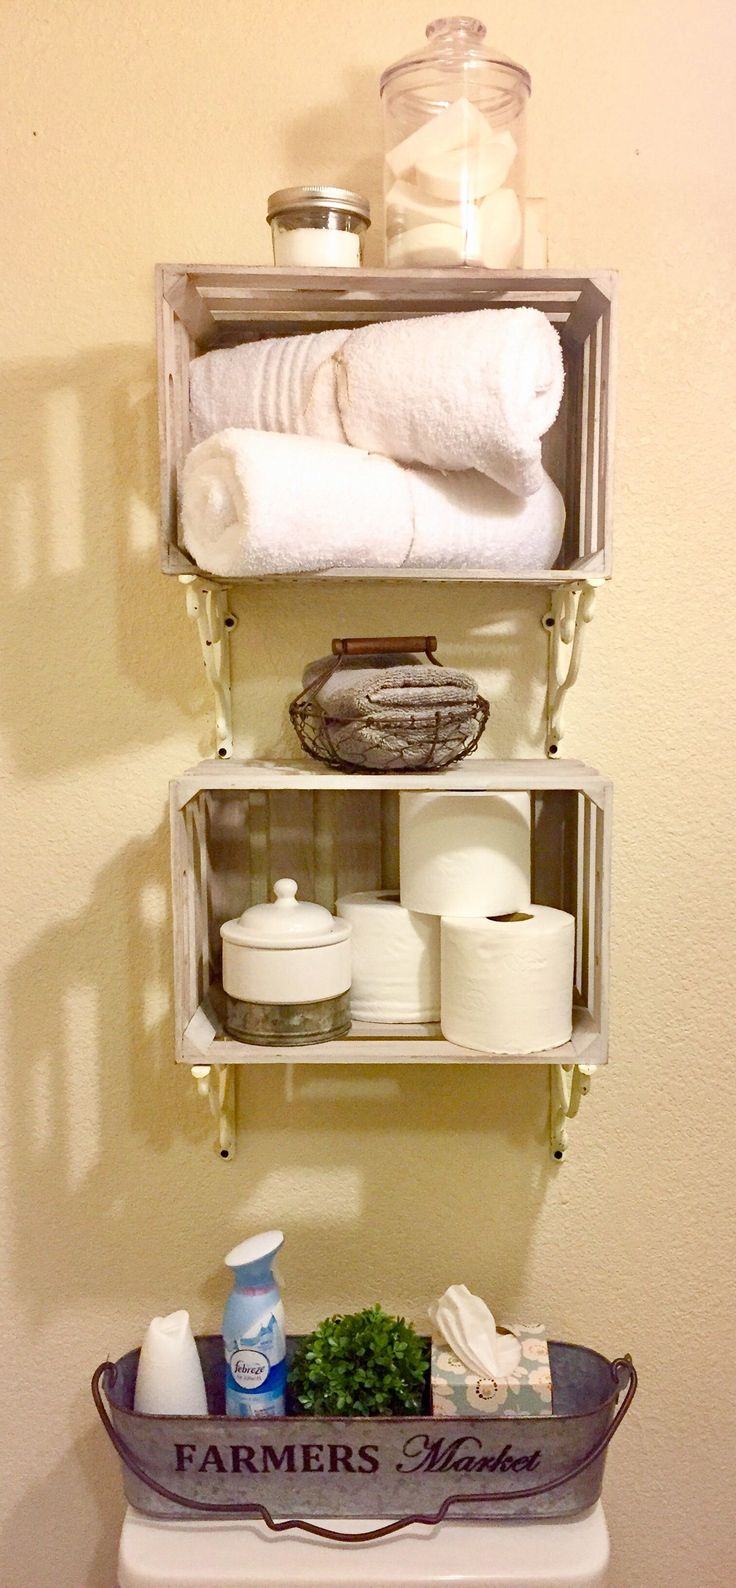 french country farmhouse bathroom storage shelves decor